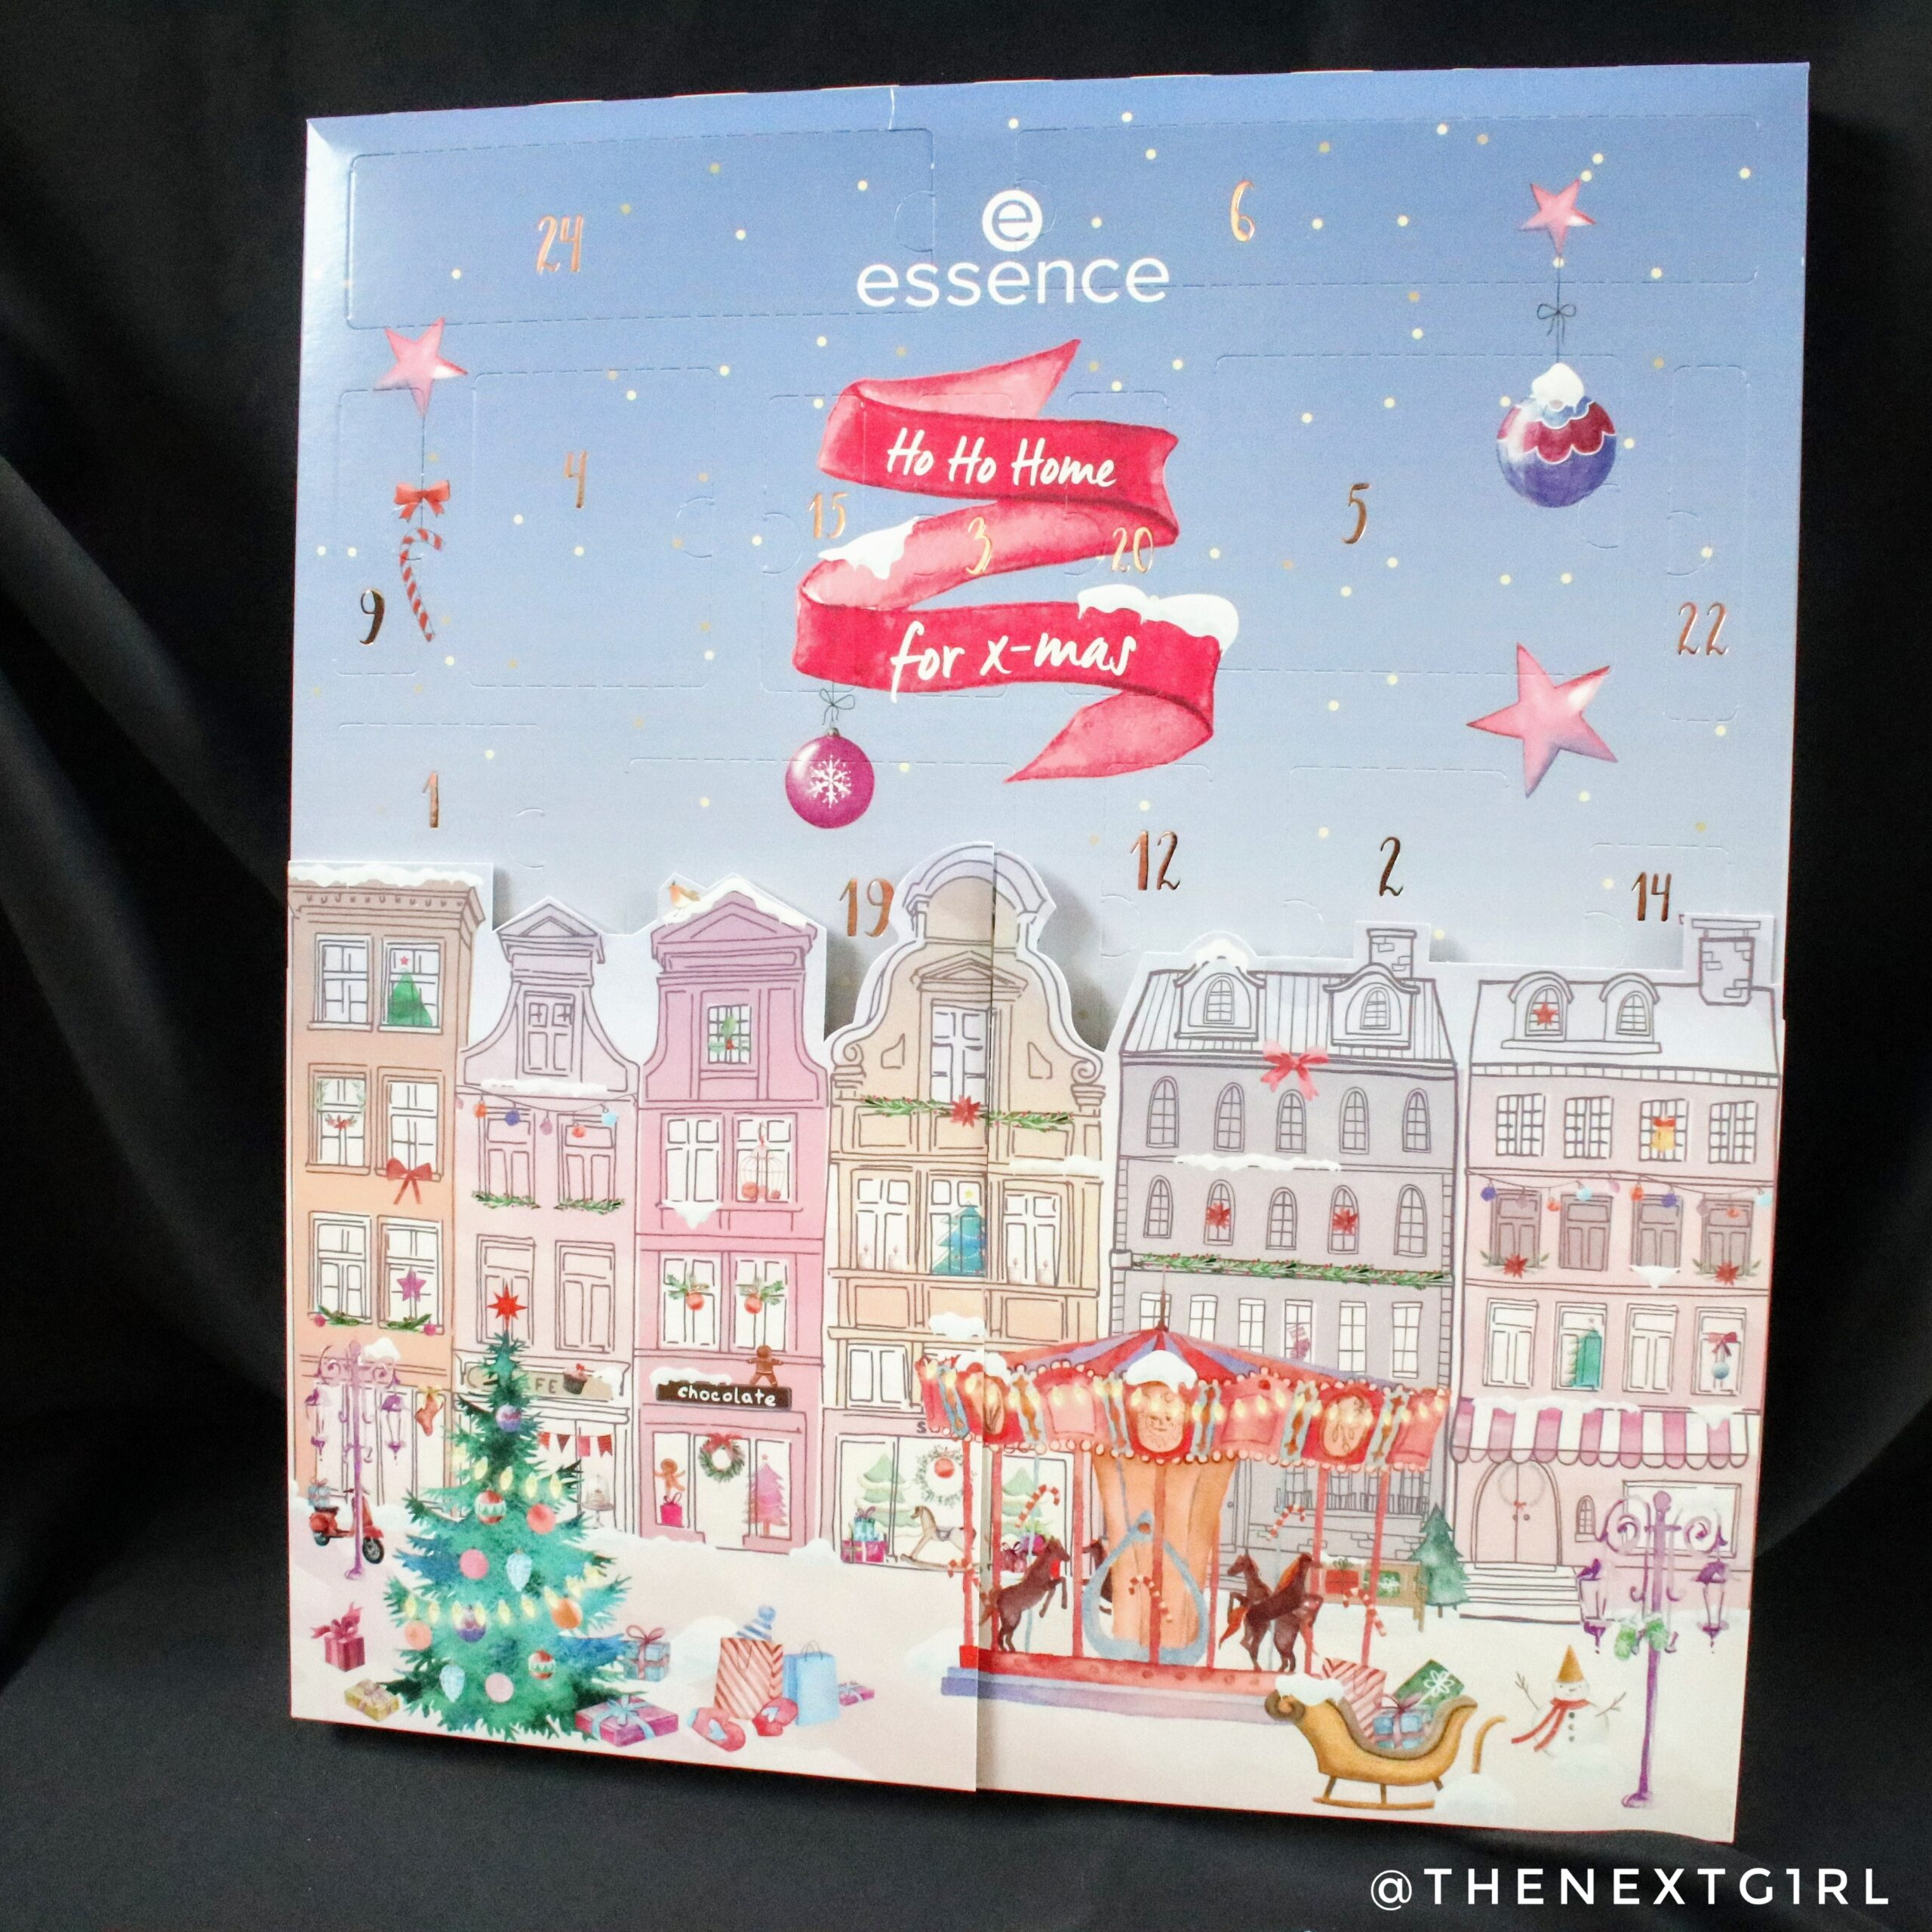 Essence Ho Ho Home for x-mas adventskalender 2020